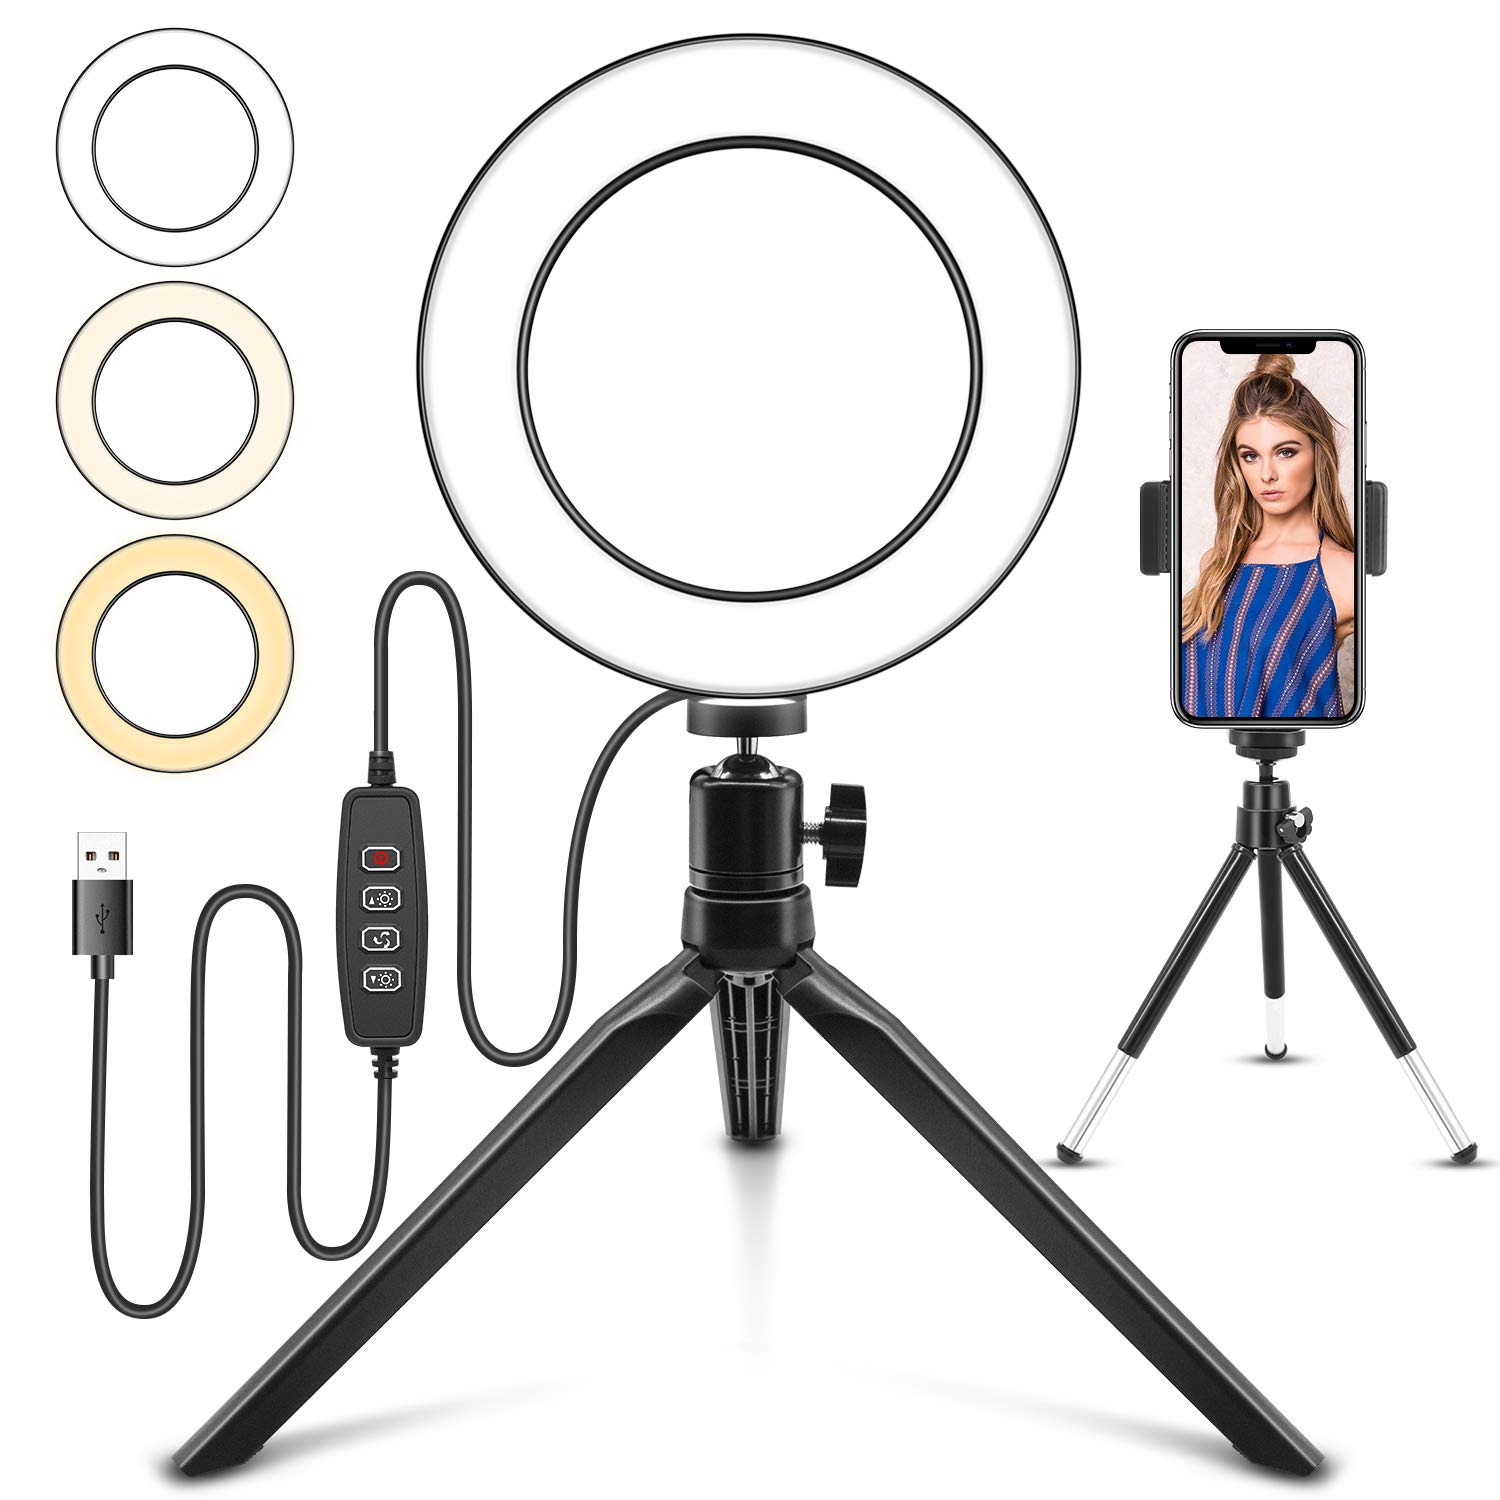 LED Ring Light 6'' with Tripod Stand and Cell Phone Holder for Live Stream, YouTube Video or Makeup, Desktop LED Camera Light with 3 Light Modes and 11 Brightness Level by Jurgen K